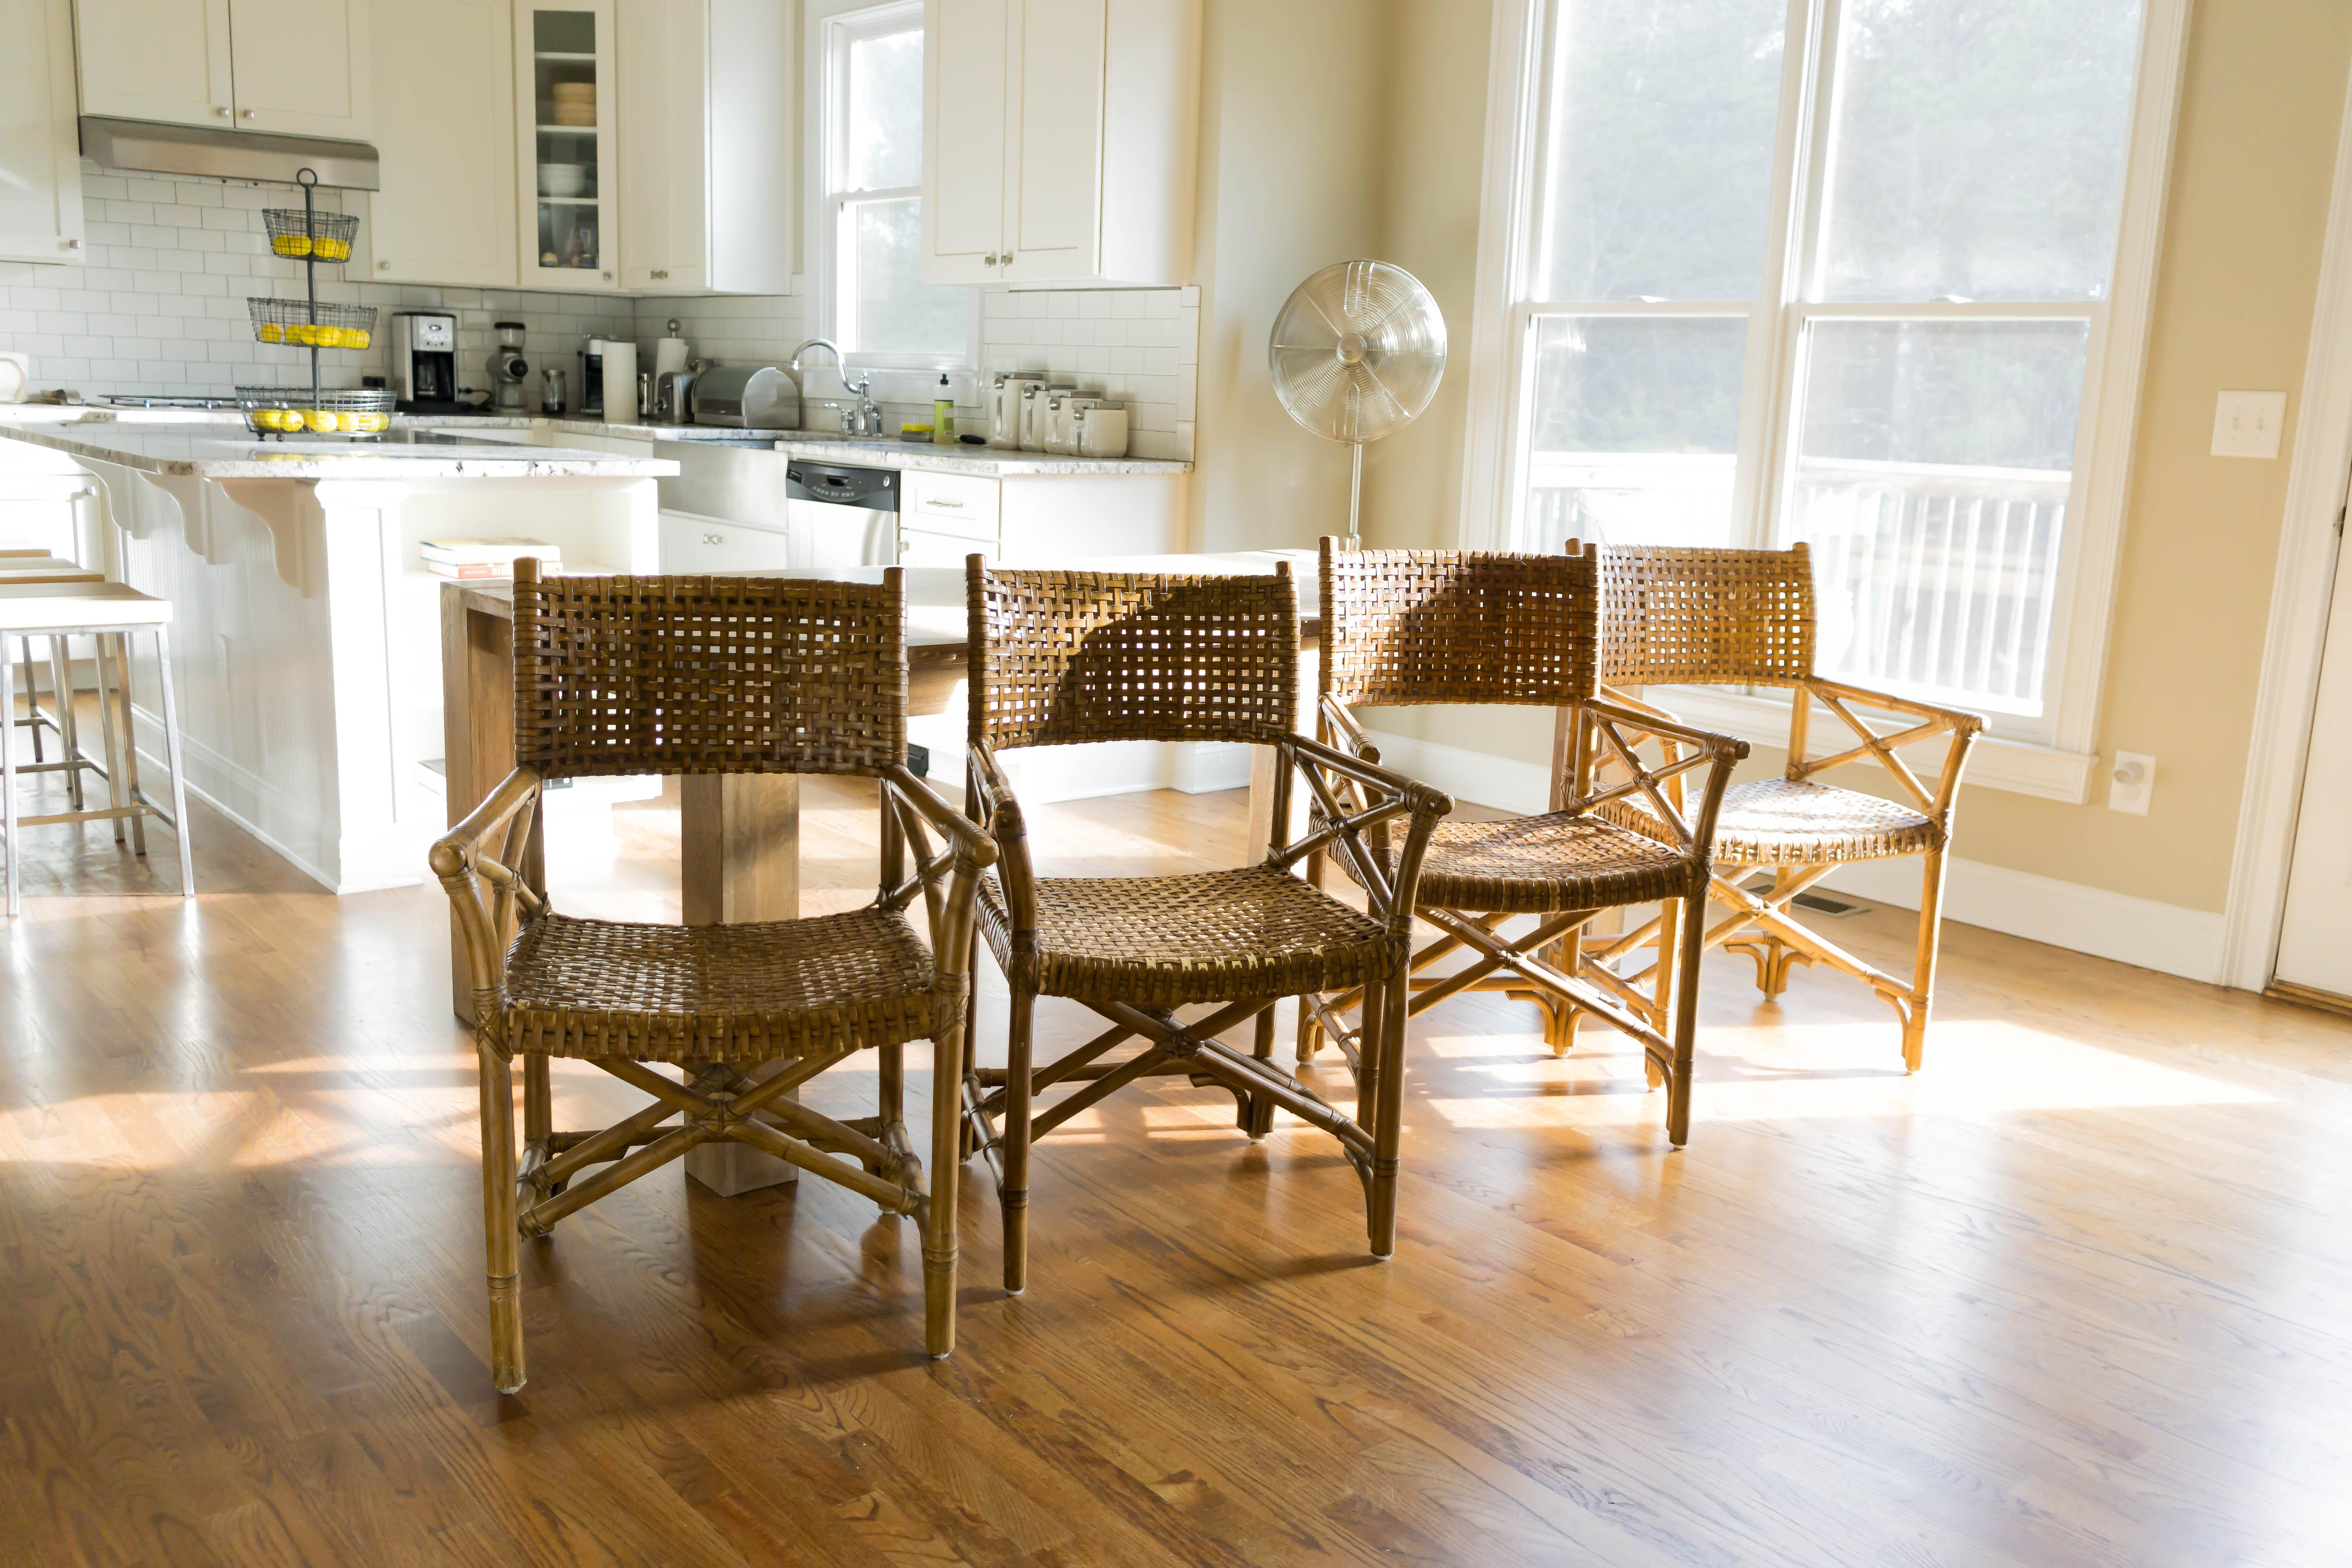 mcguire furniture company laced. McGuire Laced Rawhide Armchairs - Set Of 4 Image 5 6 Mcguire Furniture Company